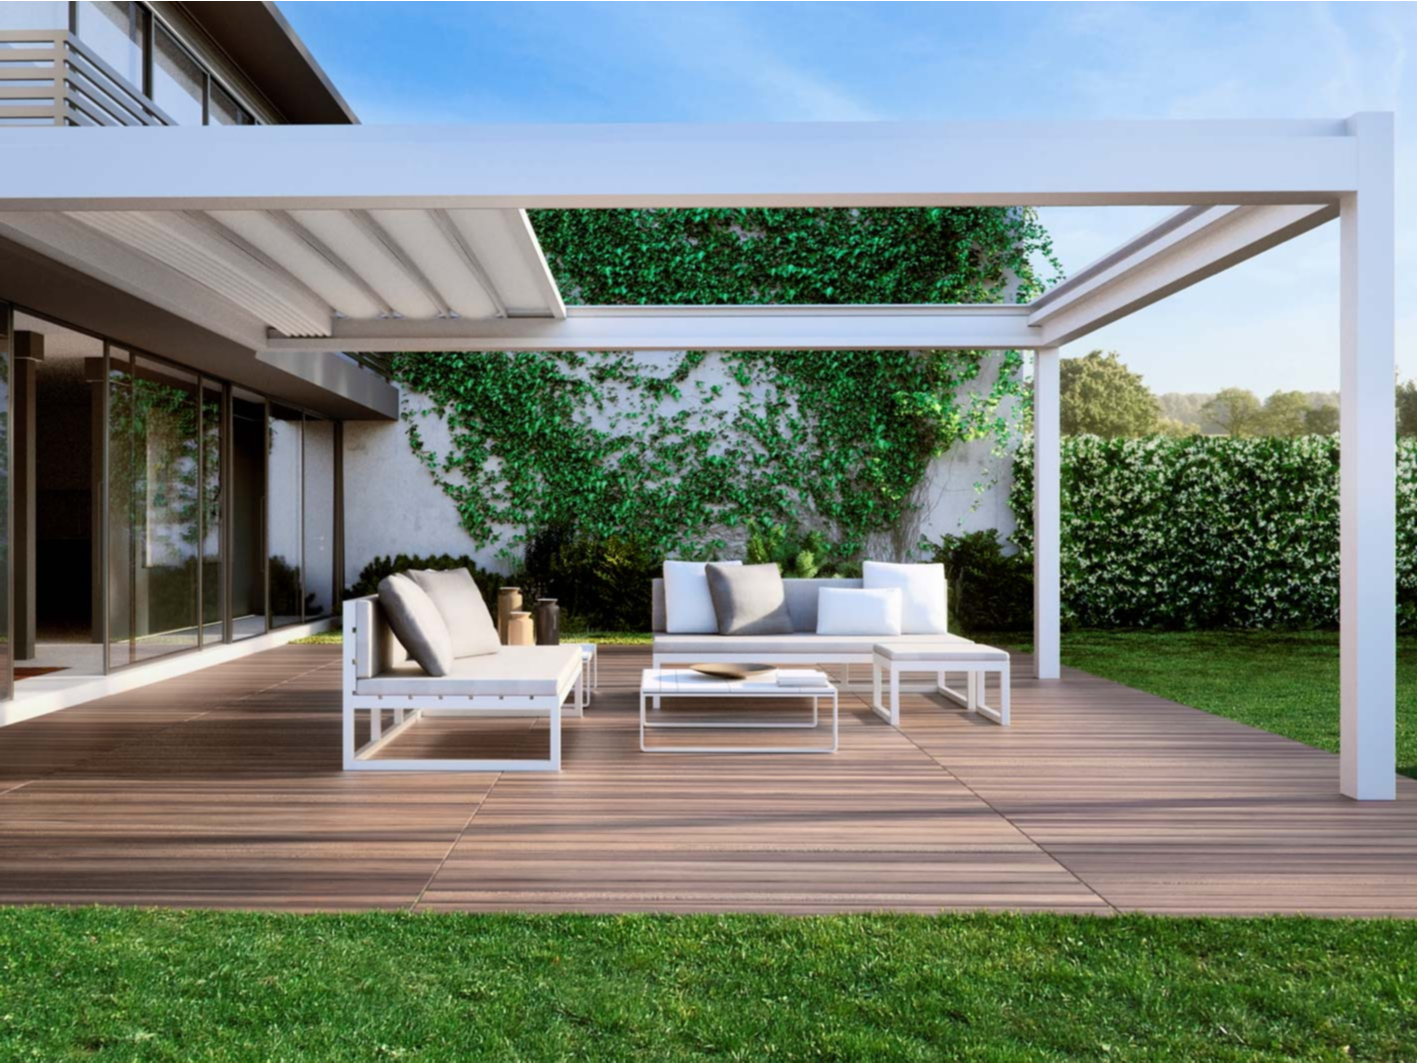 Beautiful Luxurious Patio With White Retractable Awning Over Head